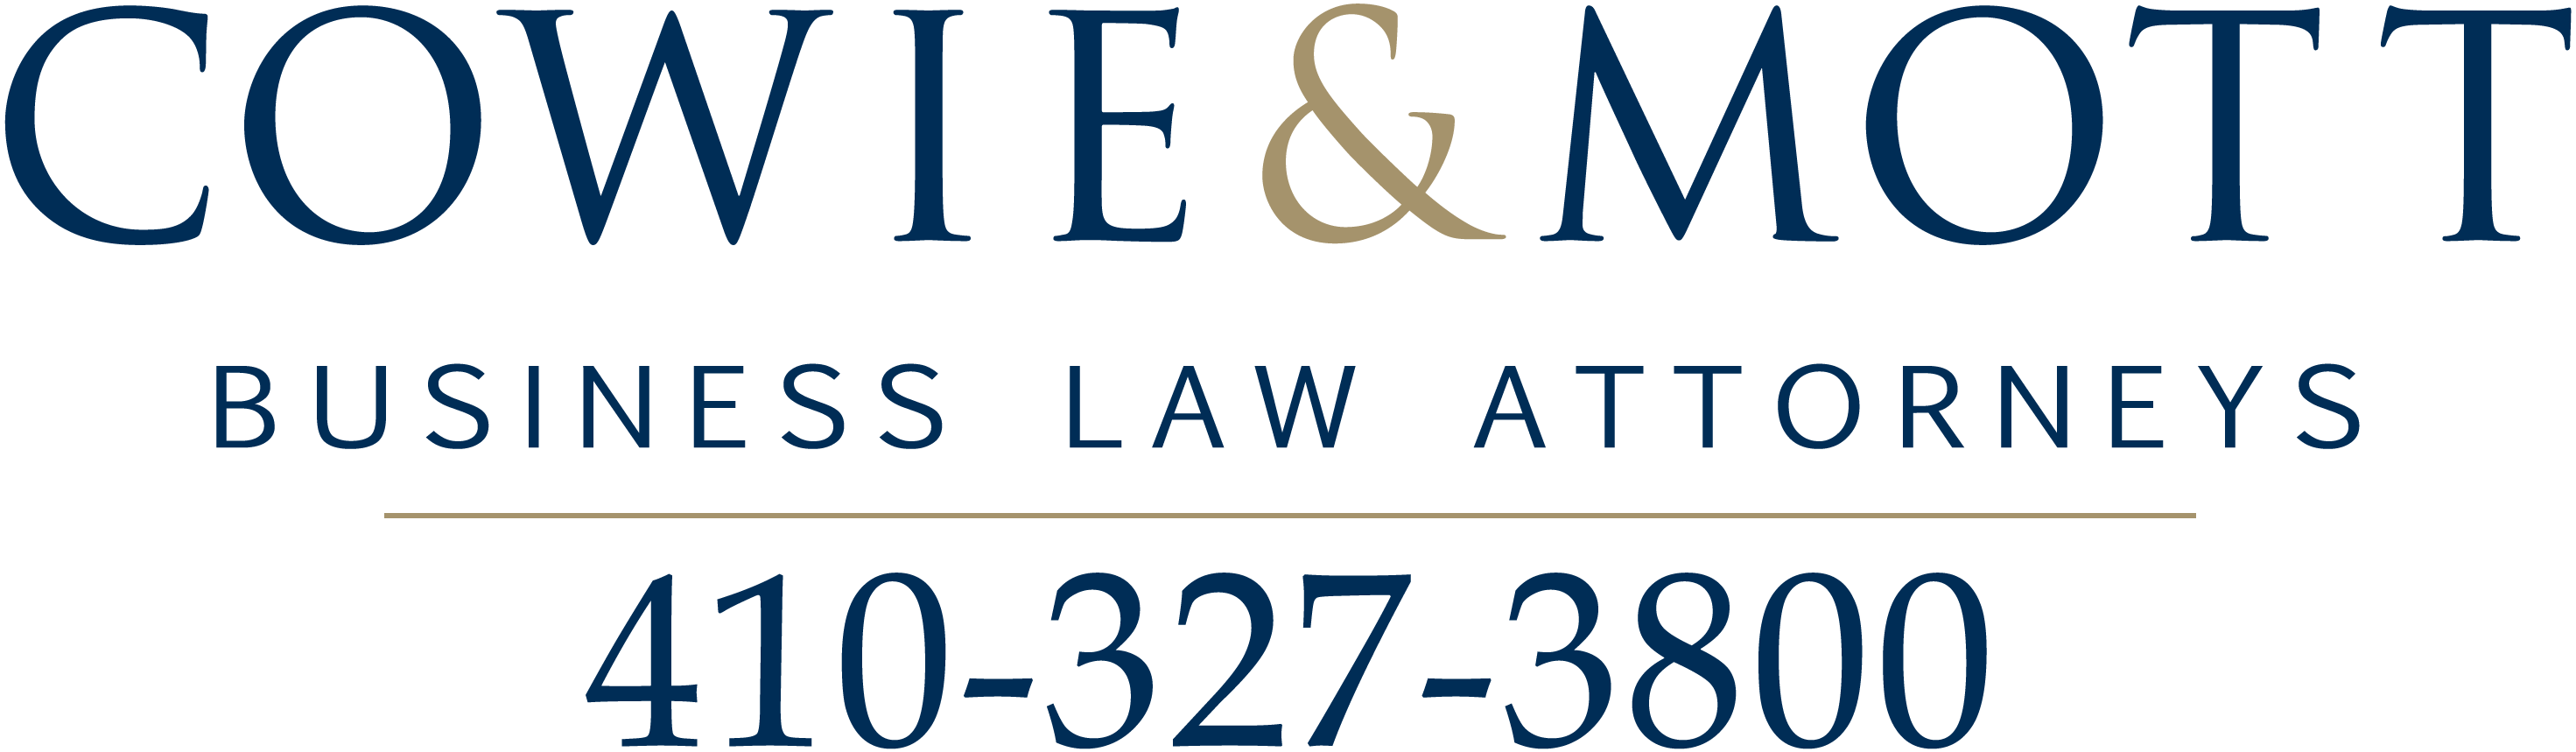 Maryland Business Attorneys Logo